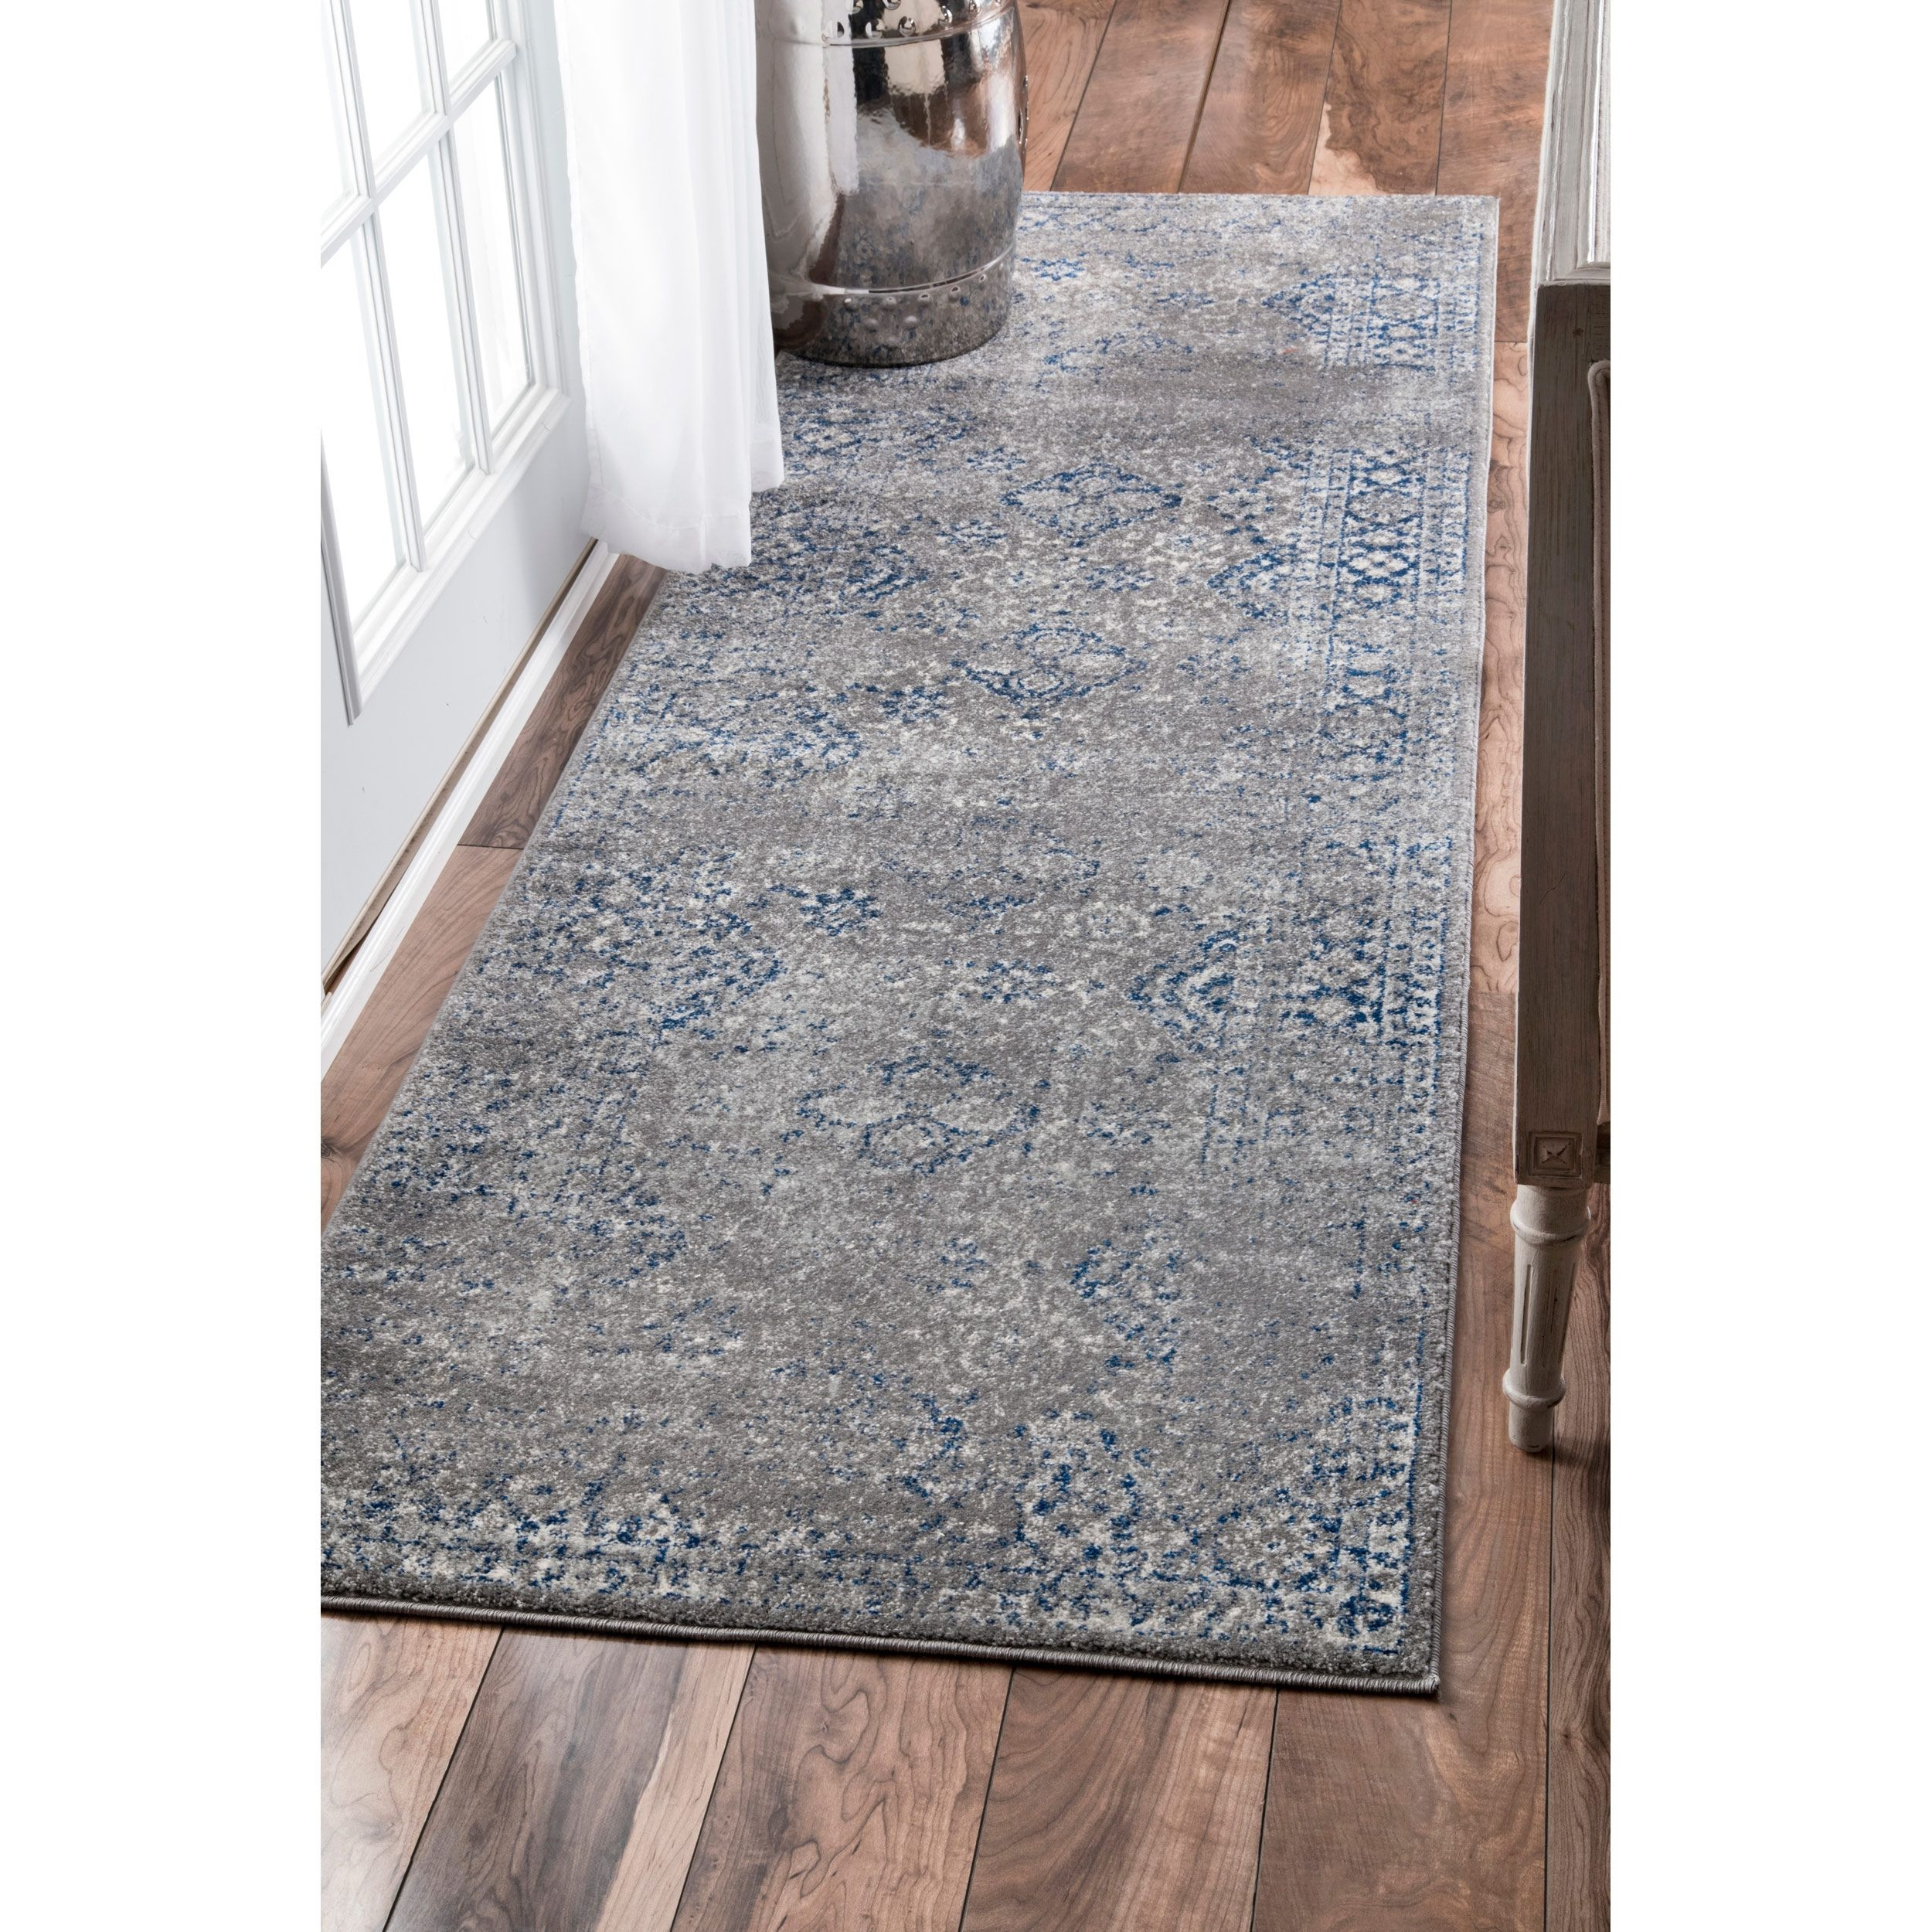 Blue Kitchen Rug: 20 Inspirations Of Blue Rug Runners For Hallways